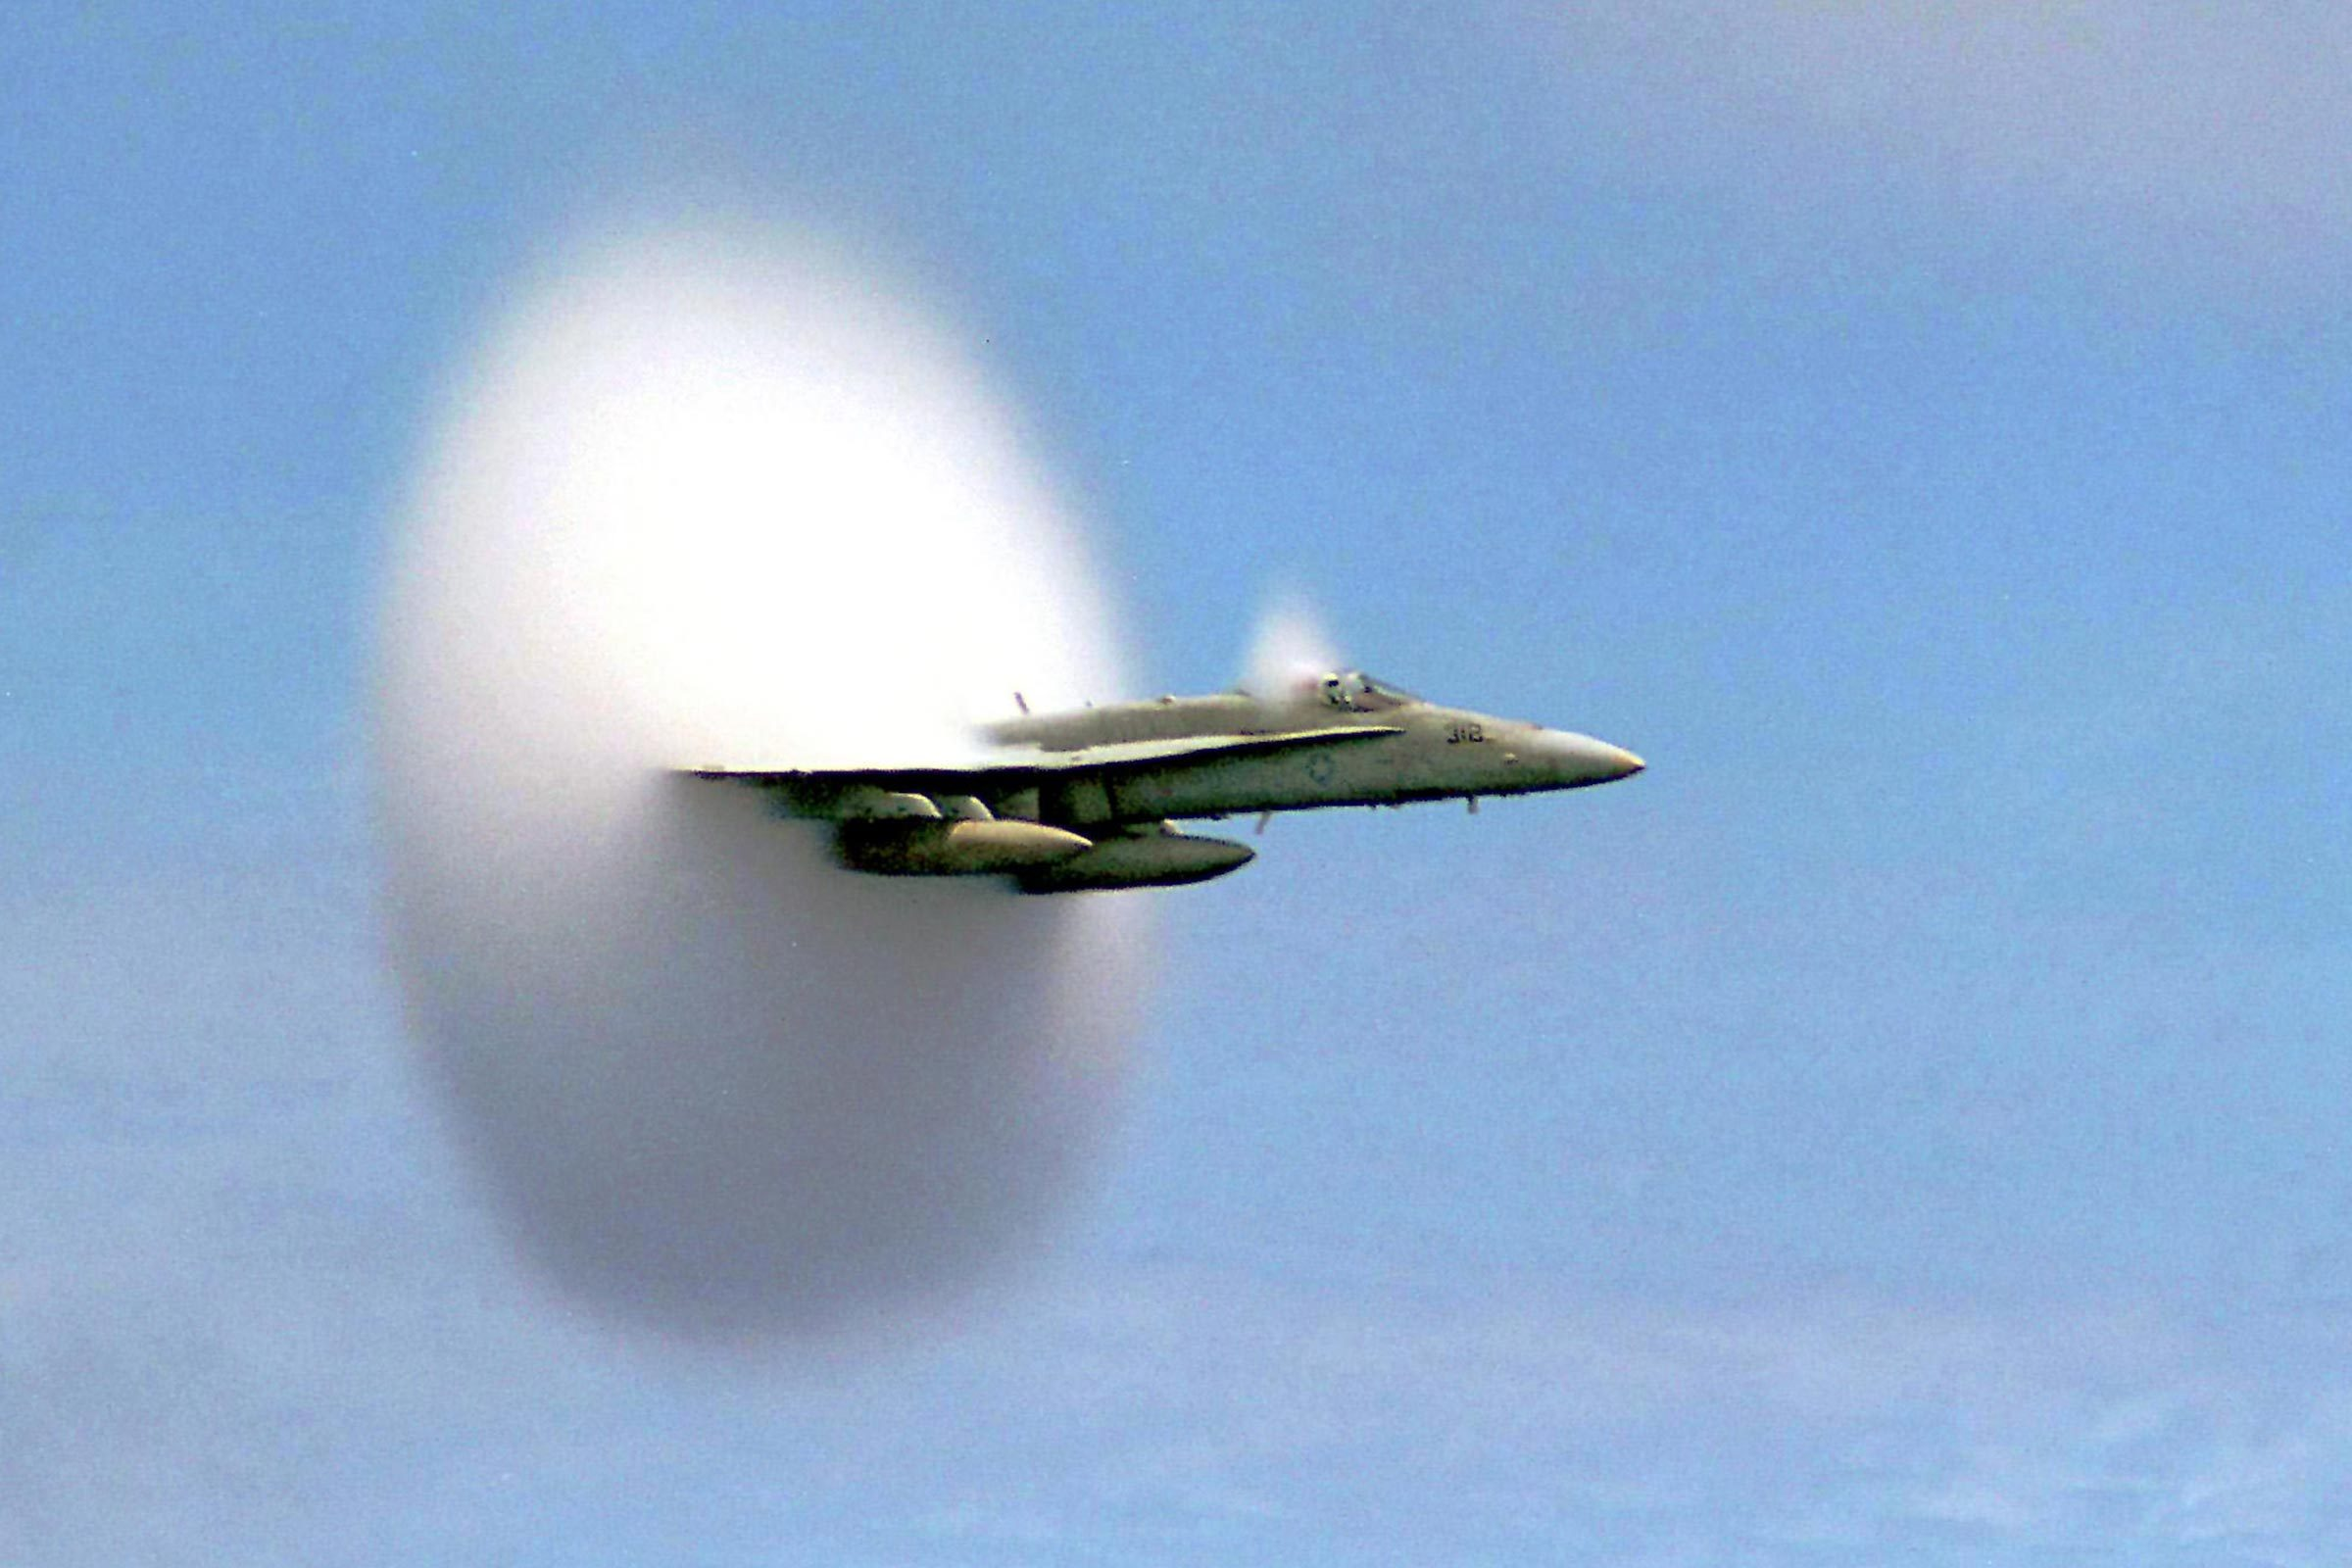 THE MOMENT A U.S. NAVY JET FIGHTER BURST THROUGH THE SOUND BARRIER